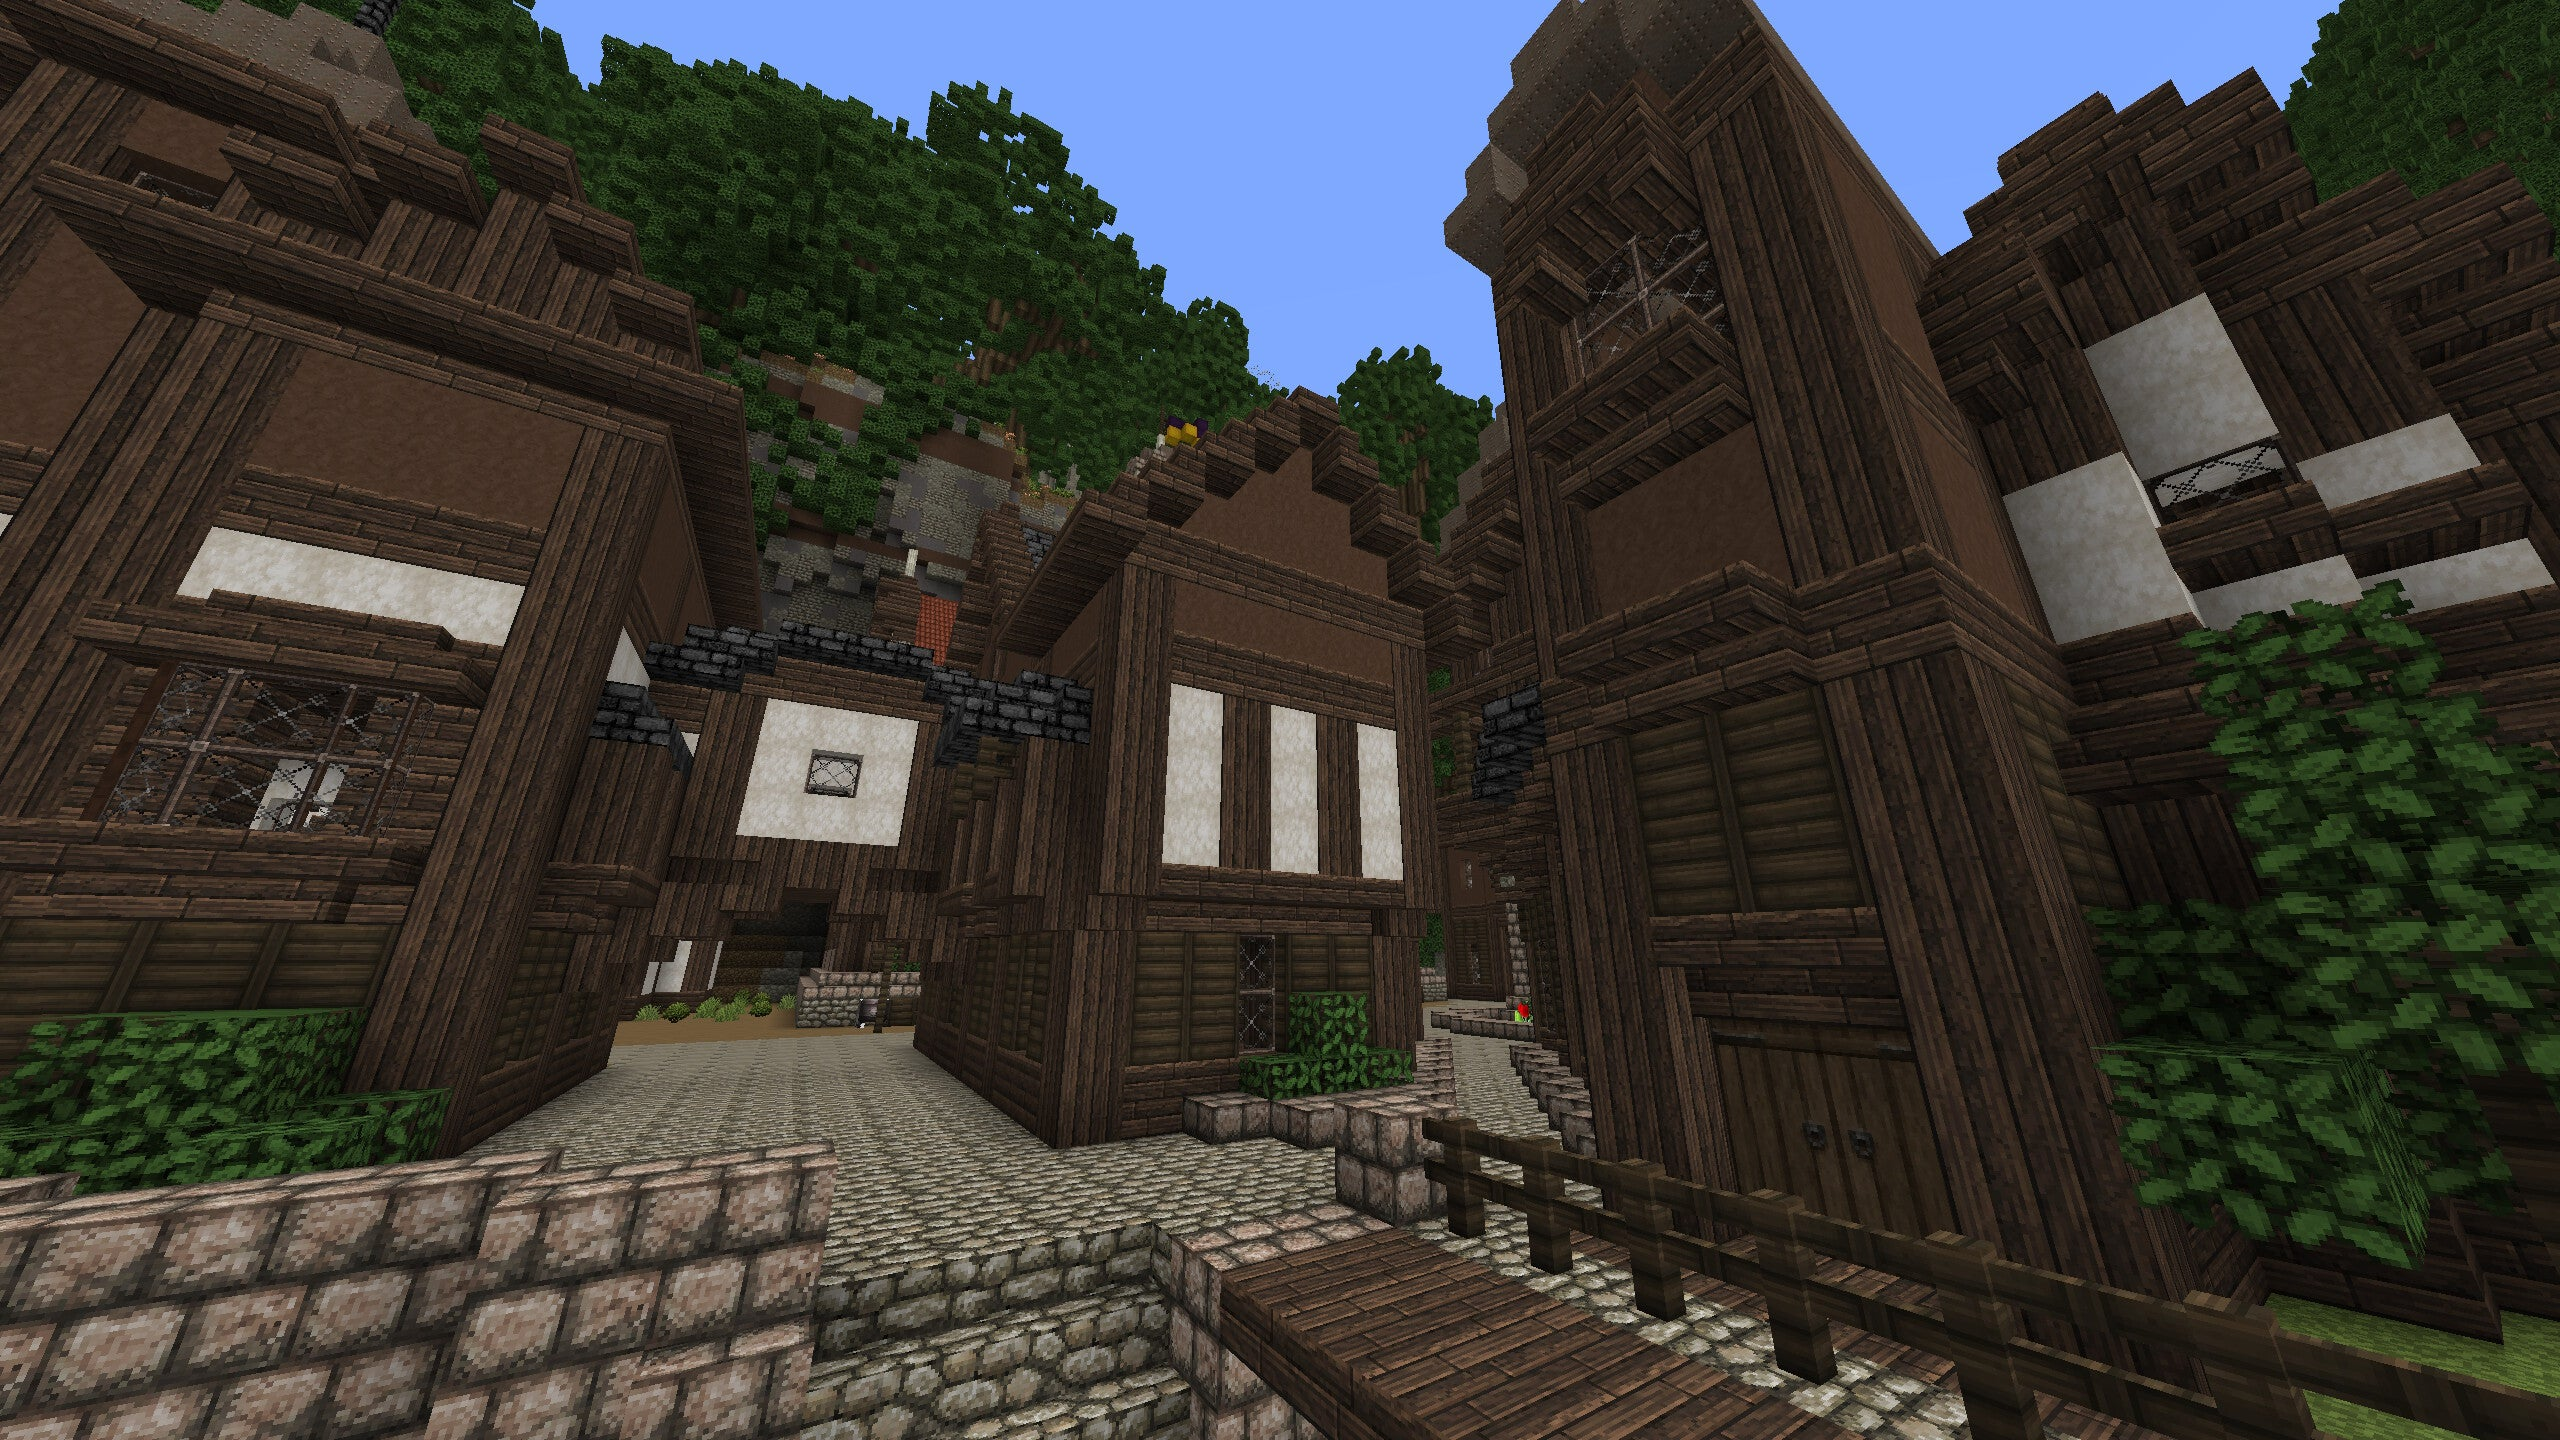 Minecraft Village Would Make a Nice Vacation Spot